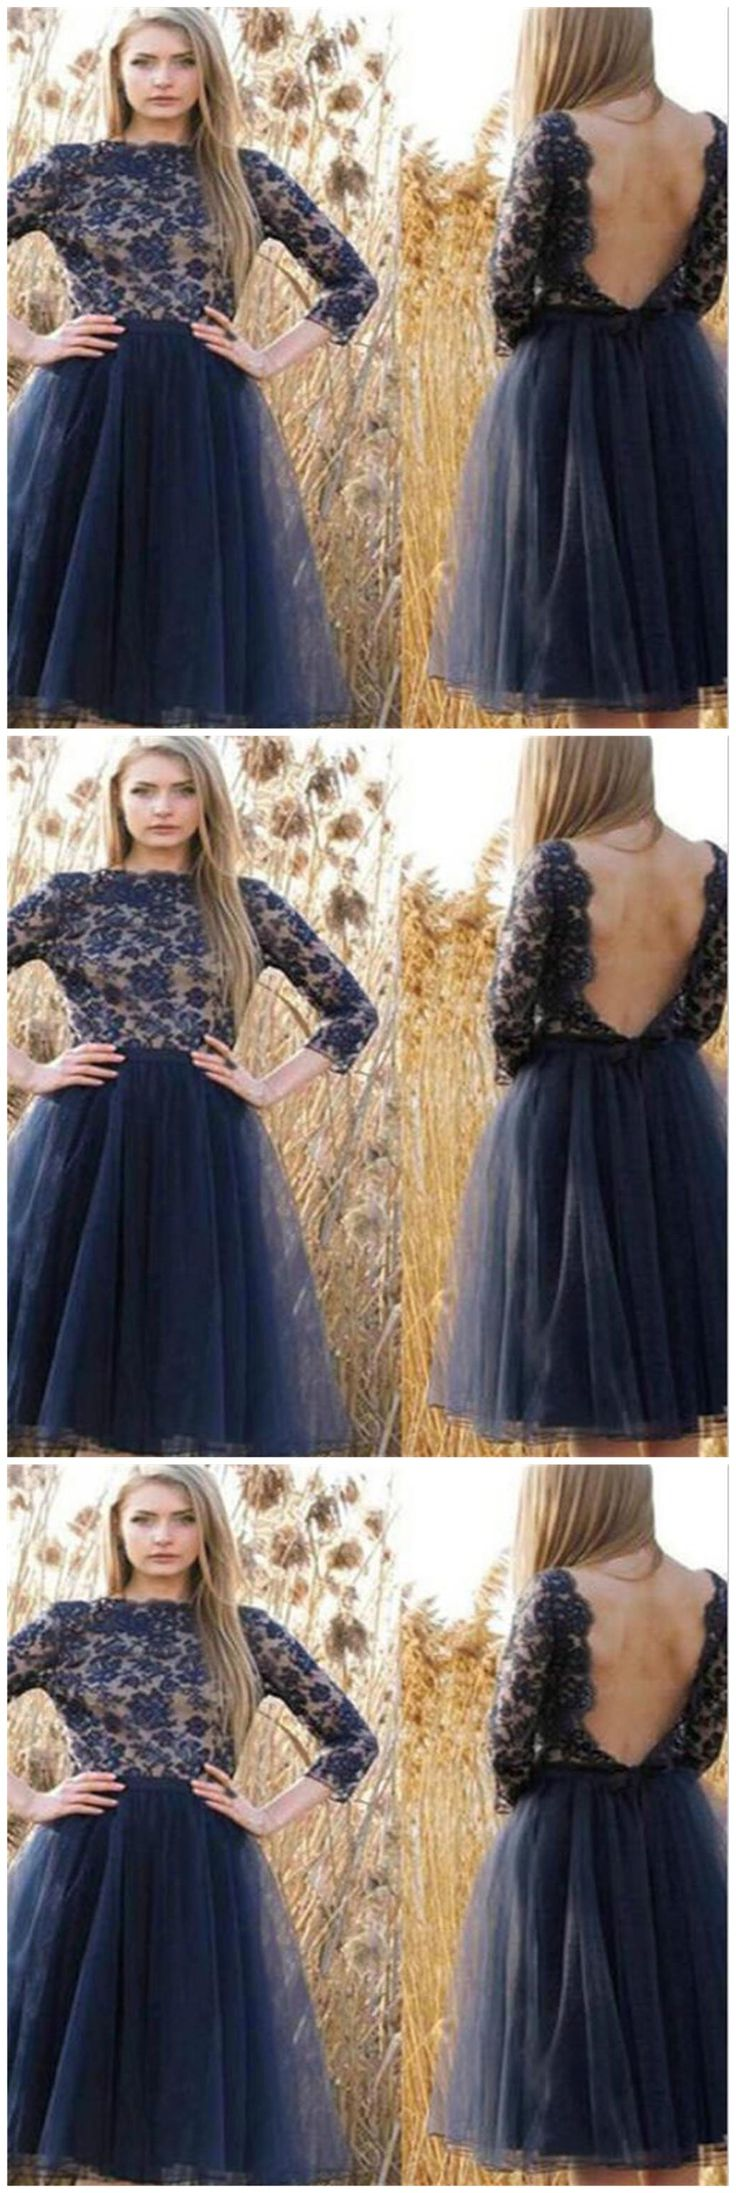 Tulle Homecoming Dress,Navy Blue Prom Dresses, Backless Homecoming Dresses, Sweet 16 Dresses, Cocktail Dresses,Junior Homecoming Dresses ,Long Sleeves Homecoming Dresses ,Graduation Dresses